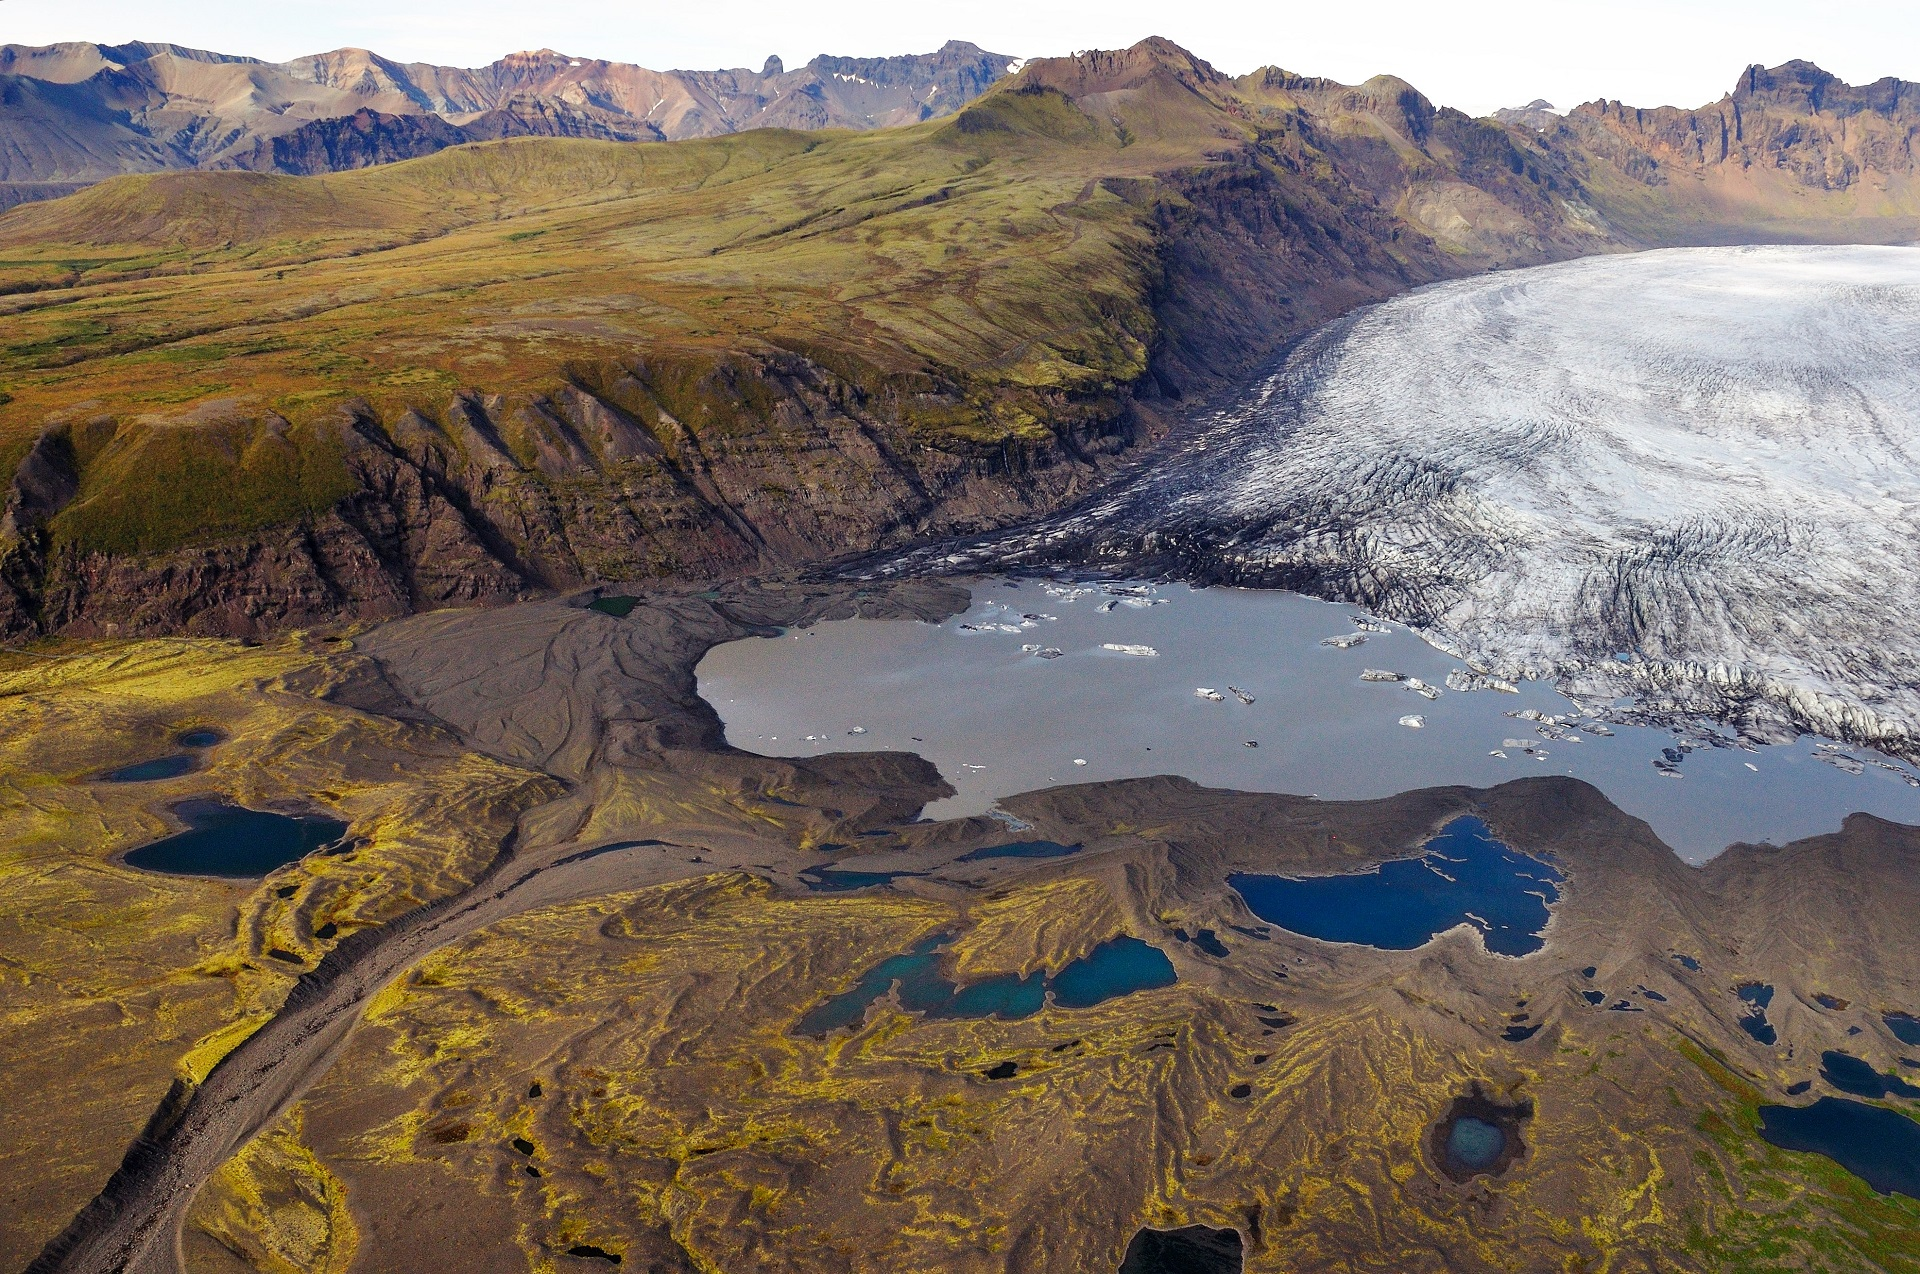 Annual moraines form when the glacier advances slightly during winter. Photo: Snævarr Guðmundsson.